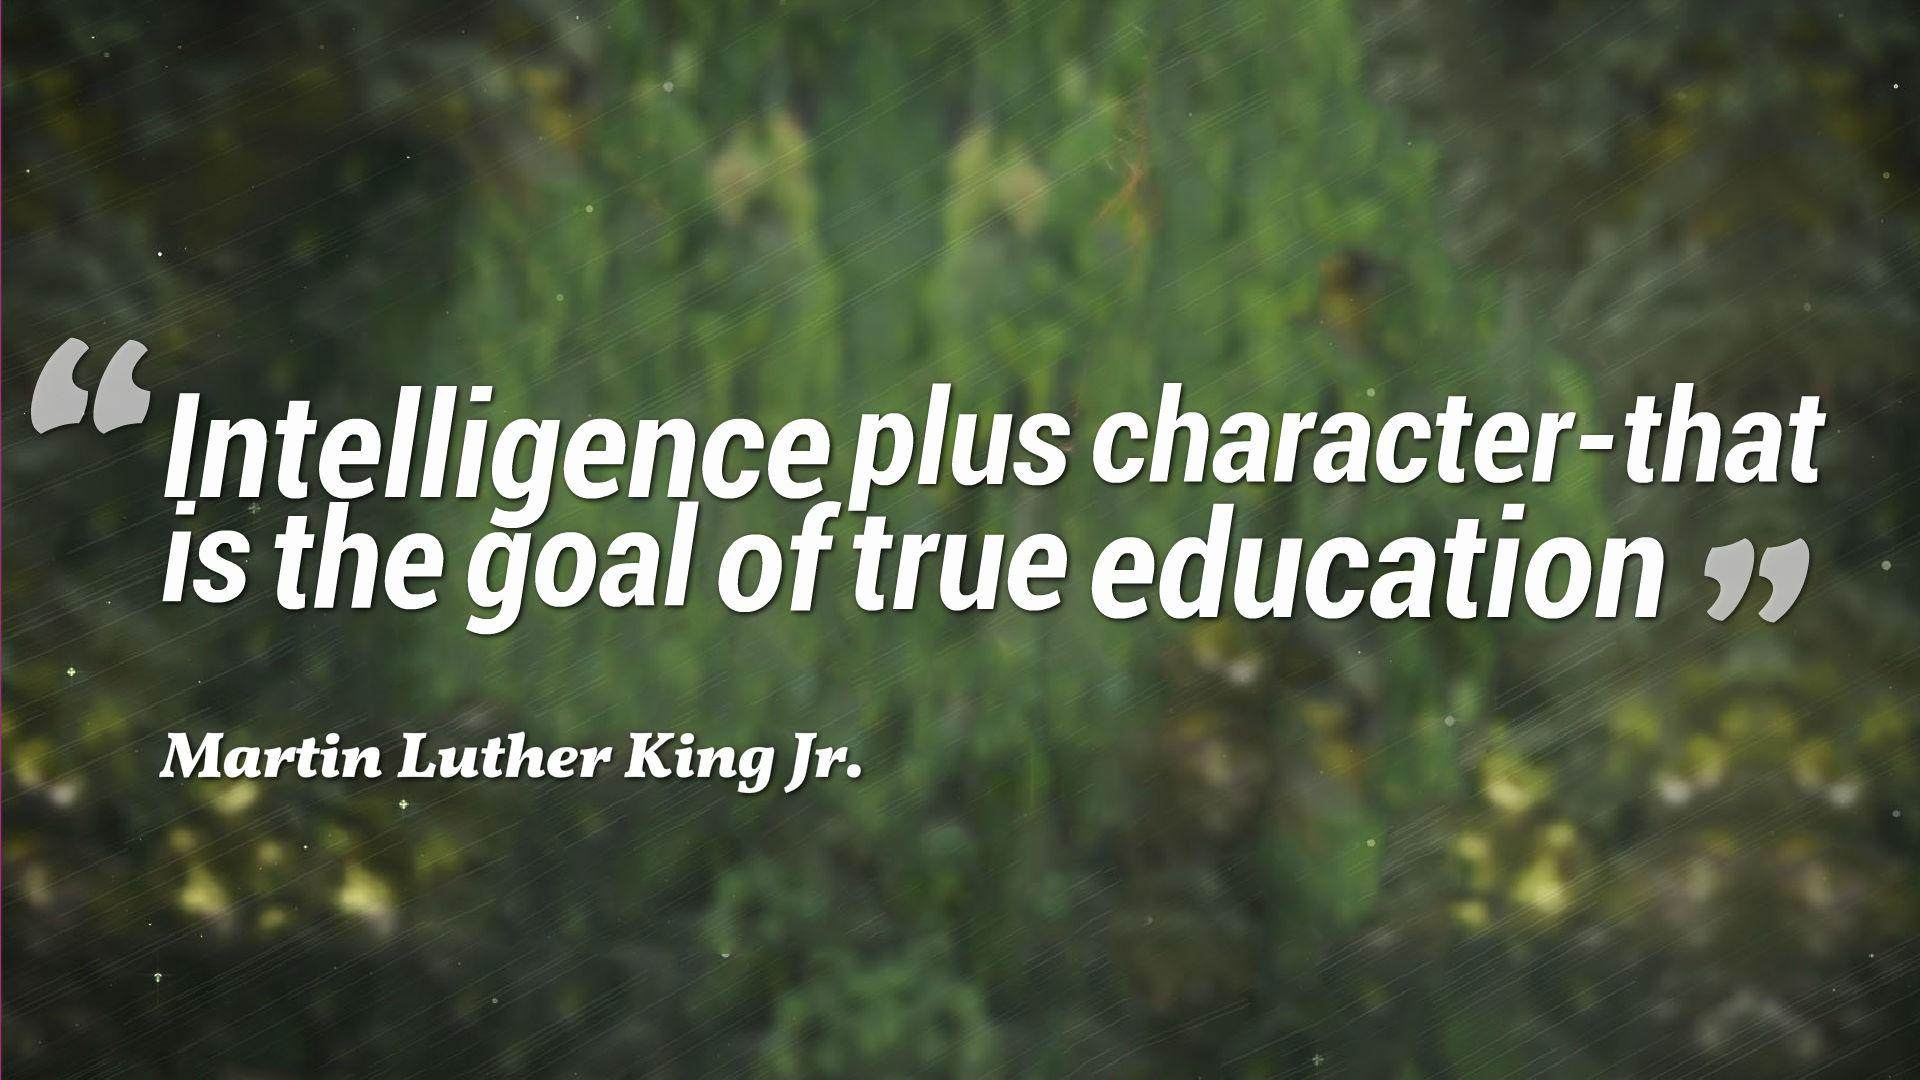 Education Quotes: Intelligence Plus Character